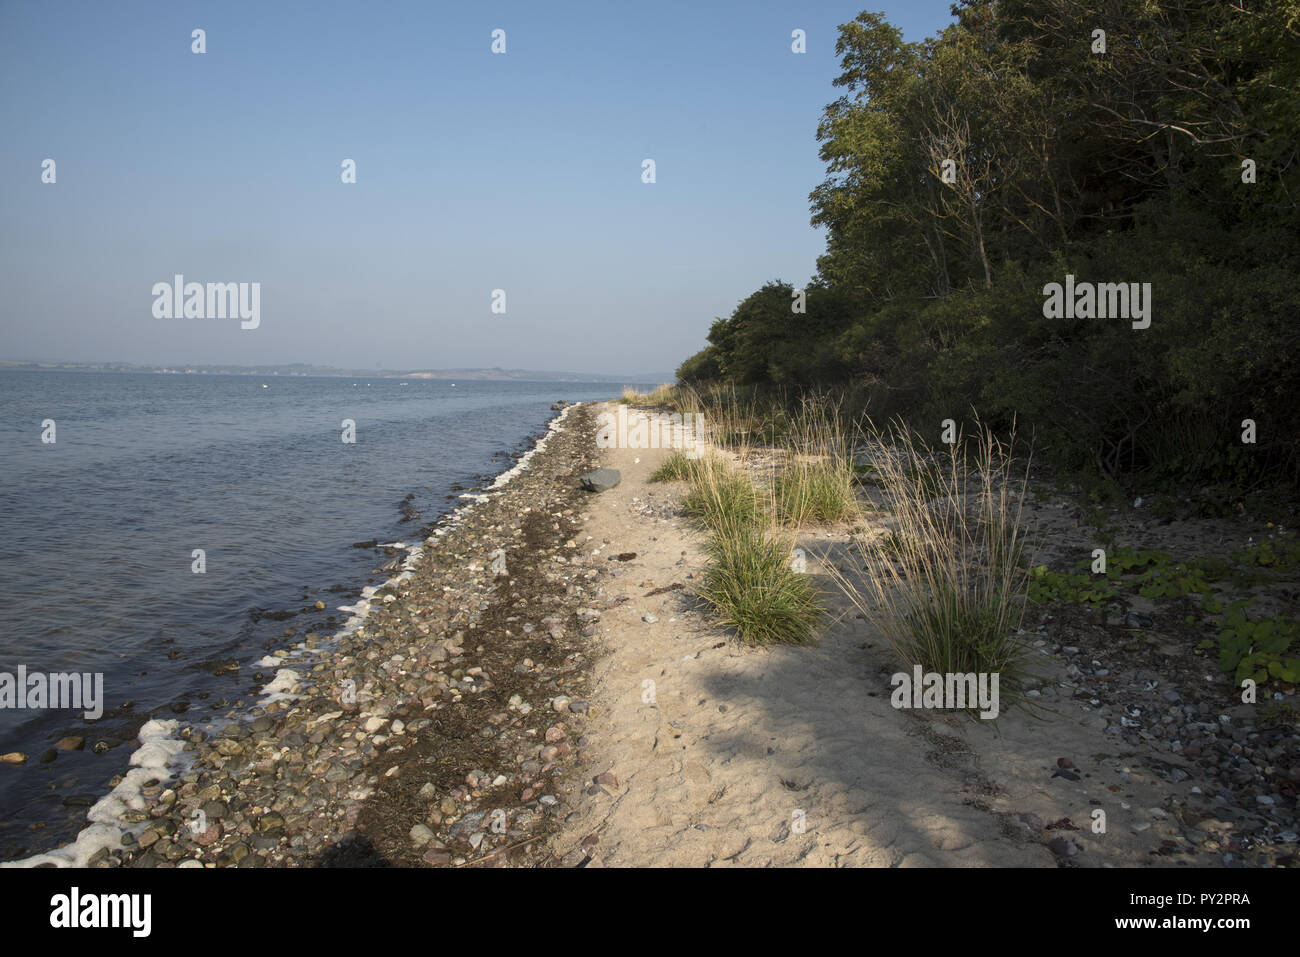 Mönchgut is a peninsula in Southeast Rügen Island with a hilly landscape and some small beaches like Hagensches Wiek. - Stock Image